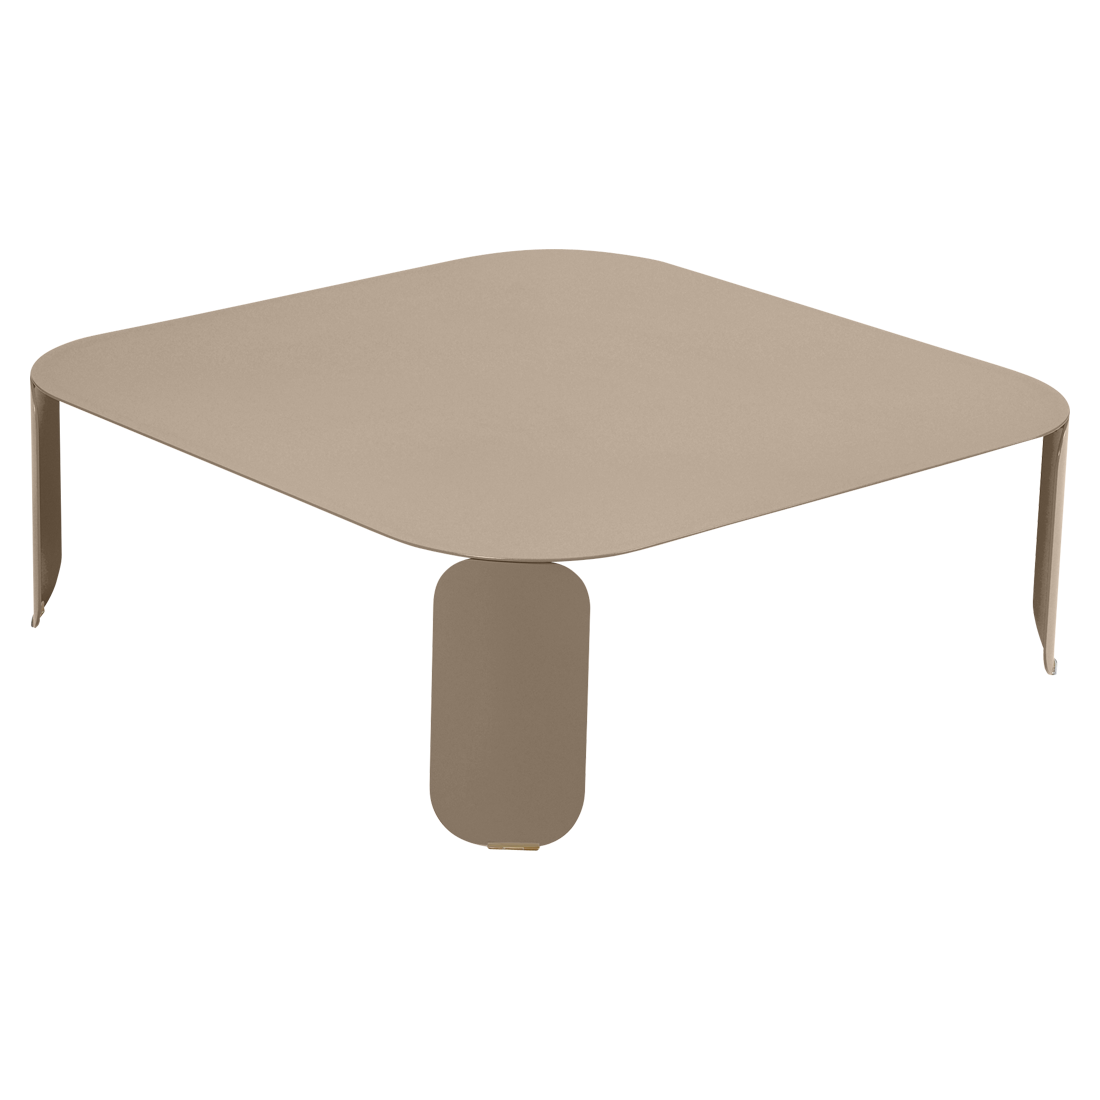 table basse metal, table basse design, table basse fermob, table basse lohner, table basse beige